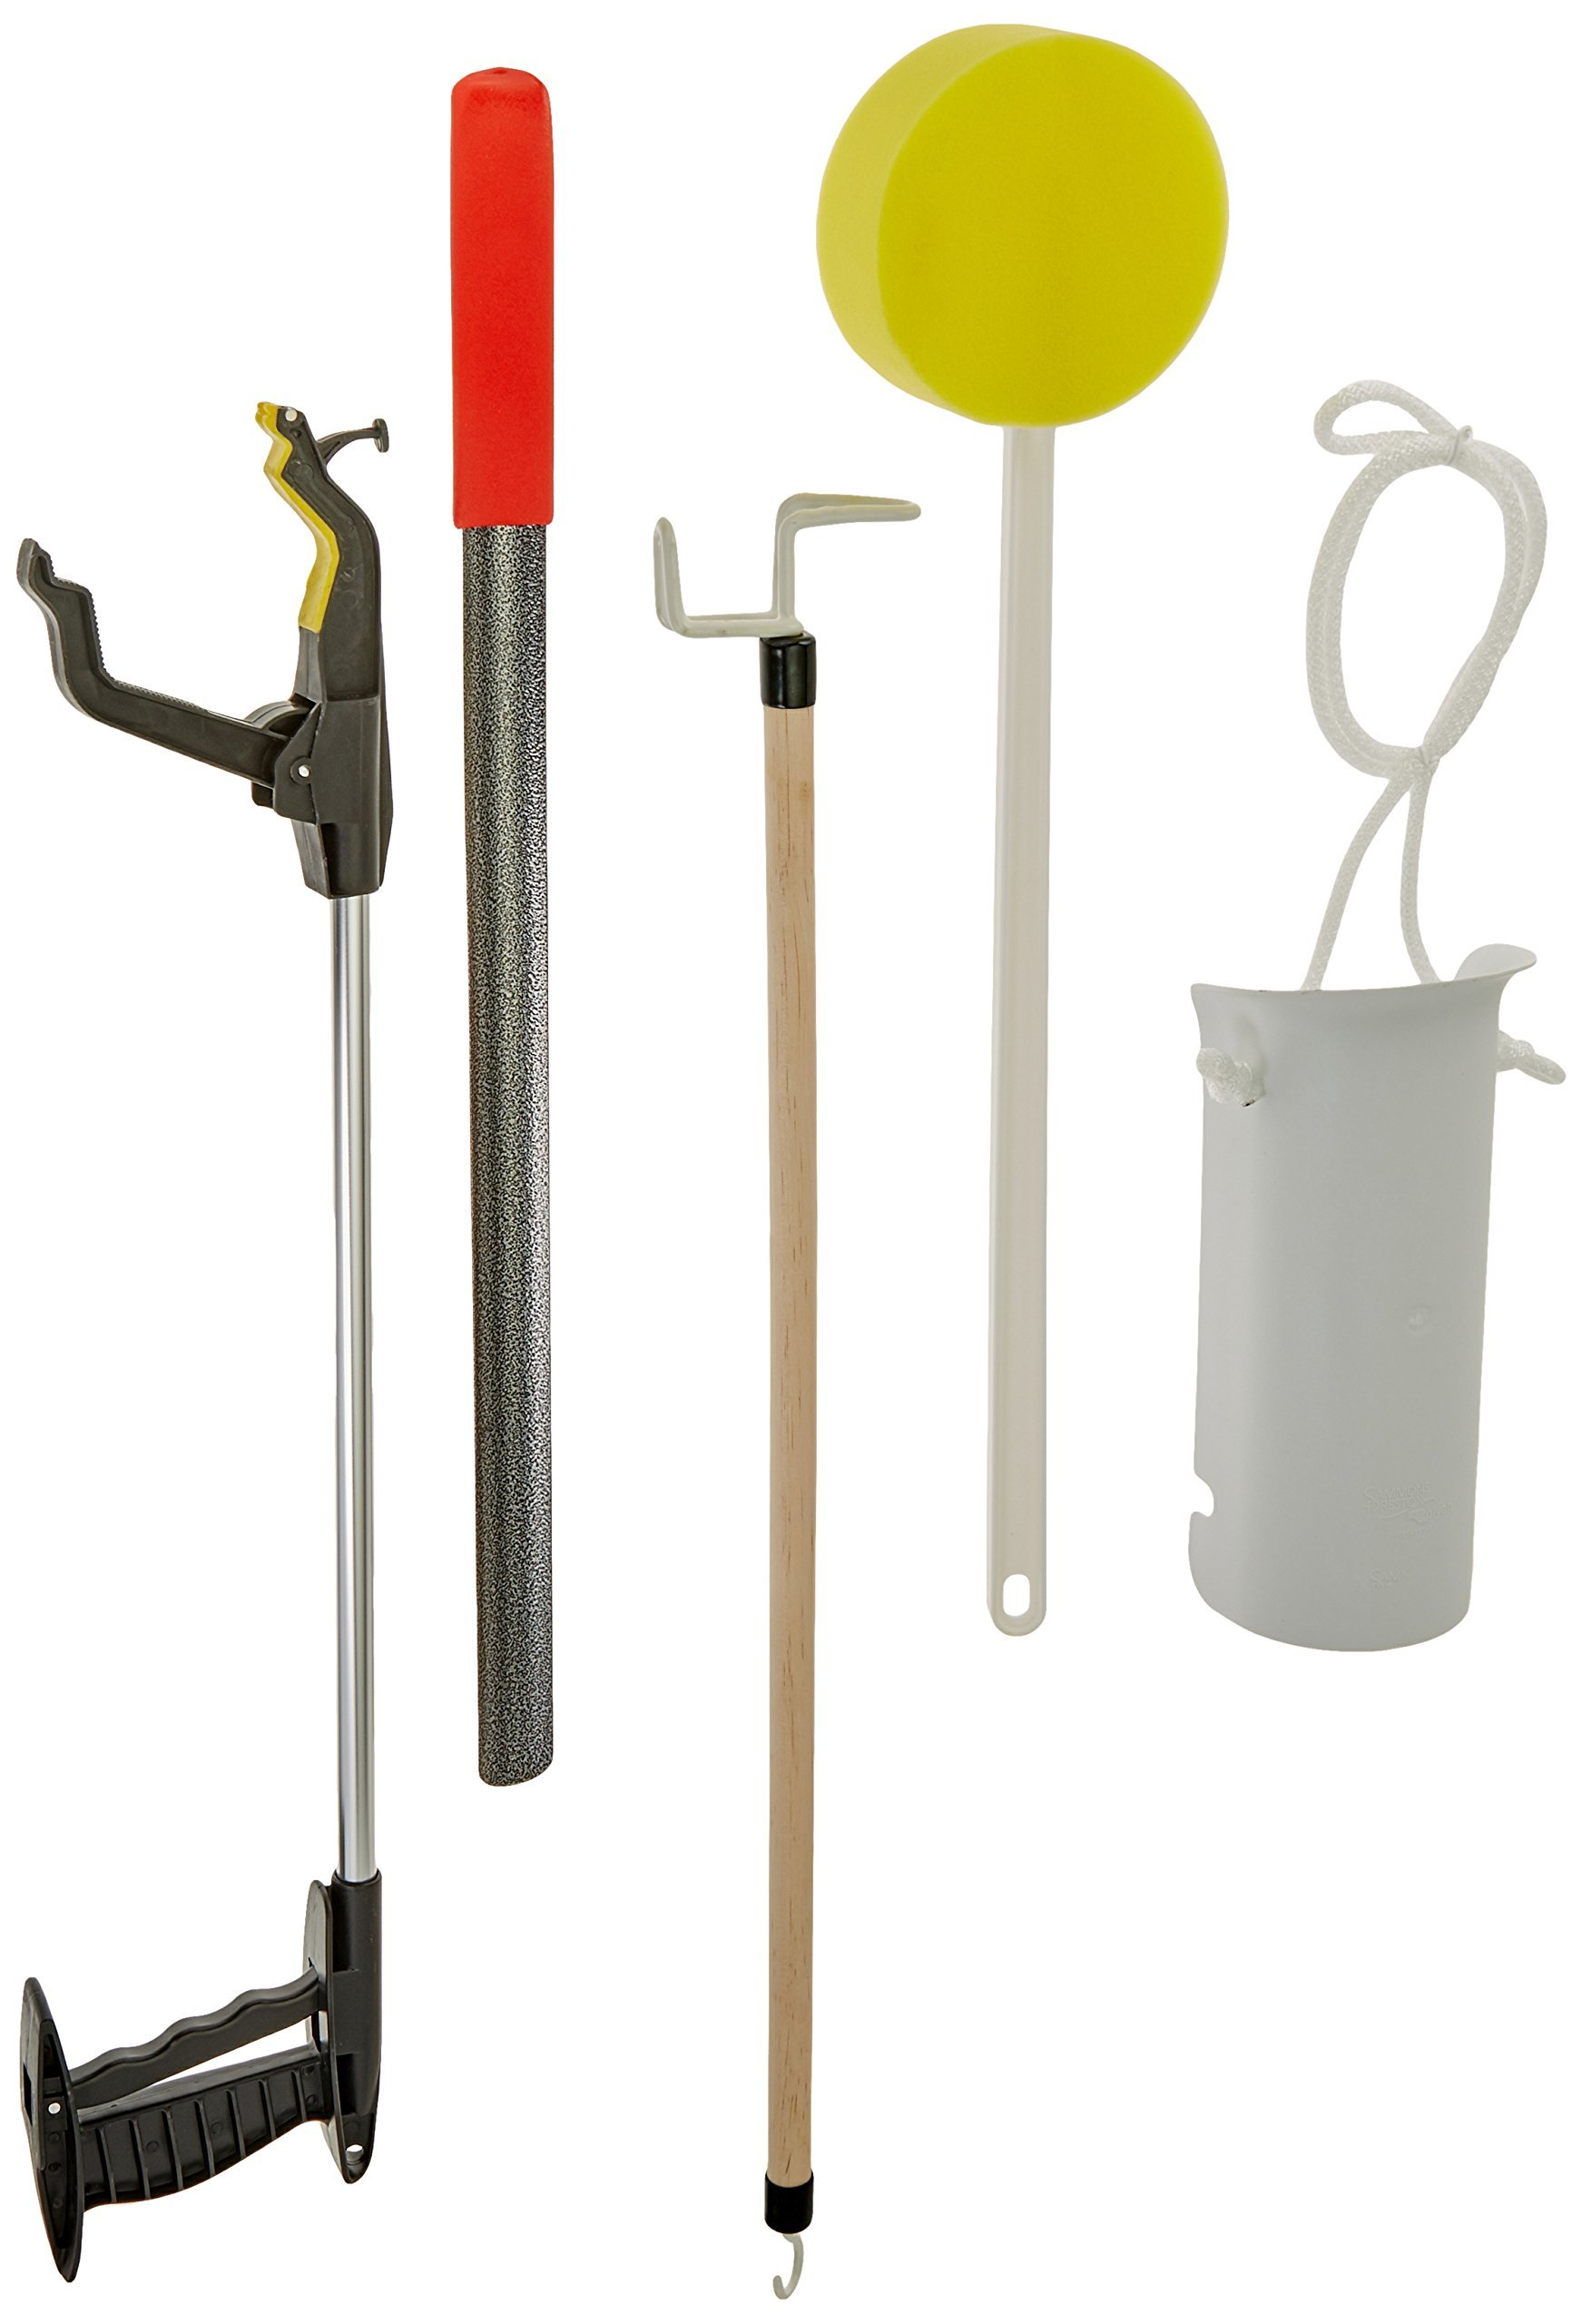 Sammons Preston Hip Kit III, Total Hip Replacement Recovery Kit to Avoid Bending and Moving Hips, ADL Tools for Elderly, Including Reacher Grabber, Sock Notch, Sponge, Dressing Stick, and Shoehorn